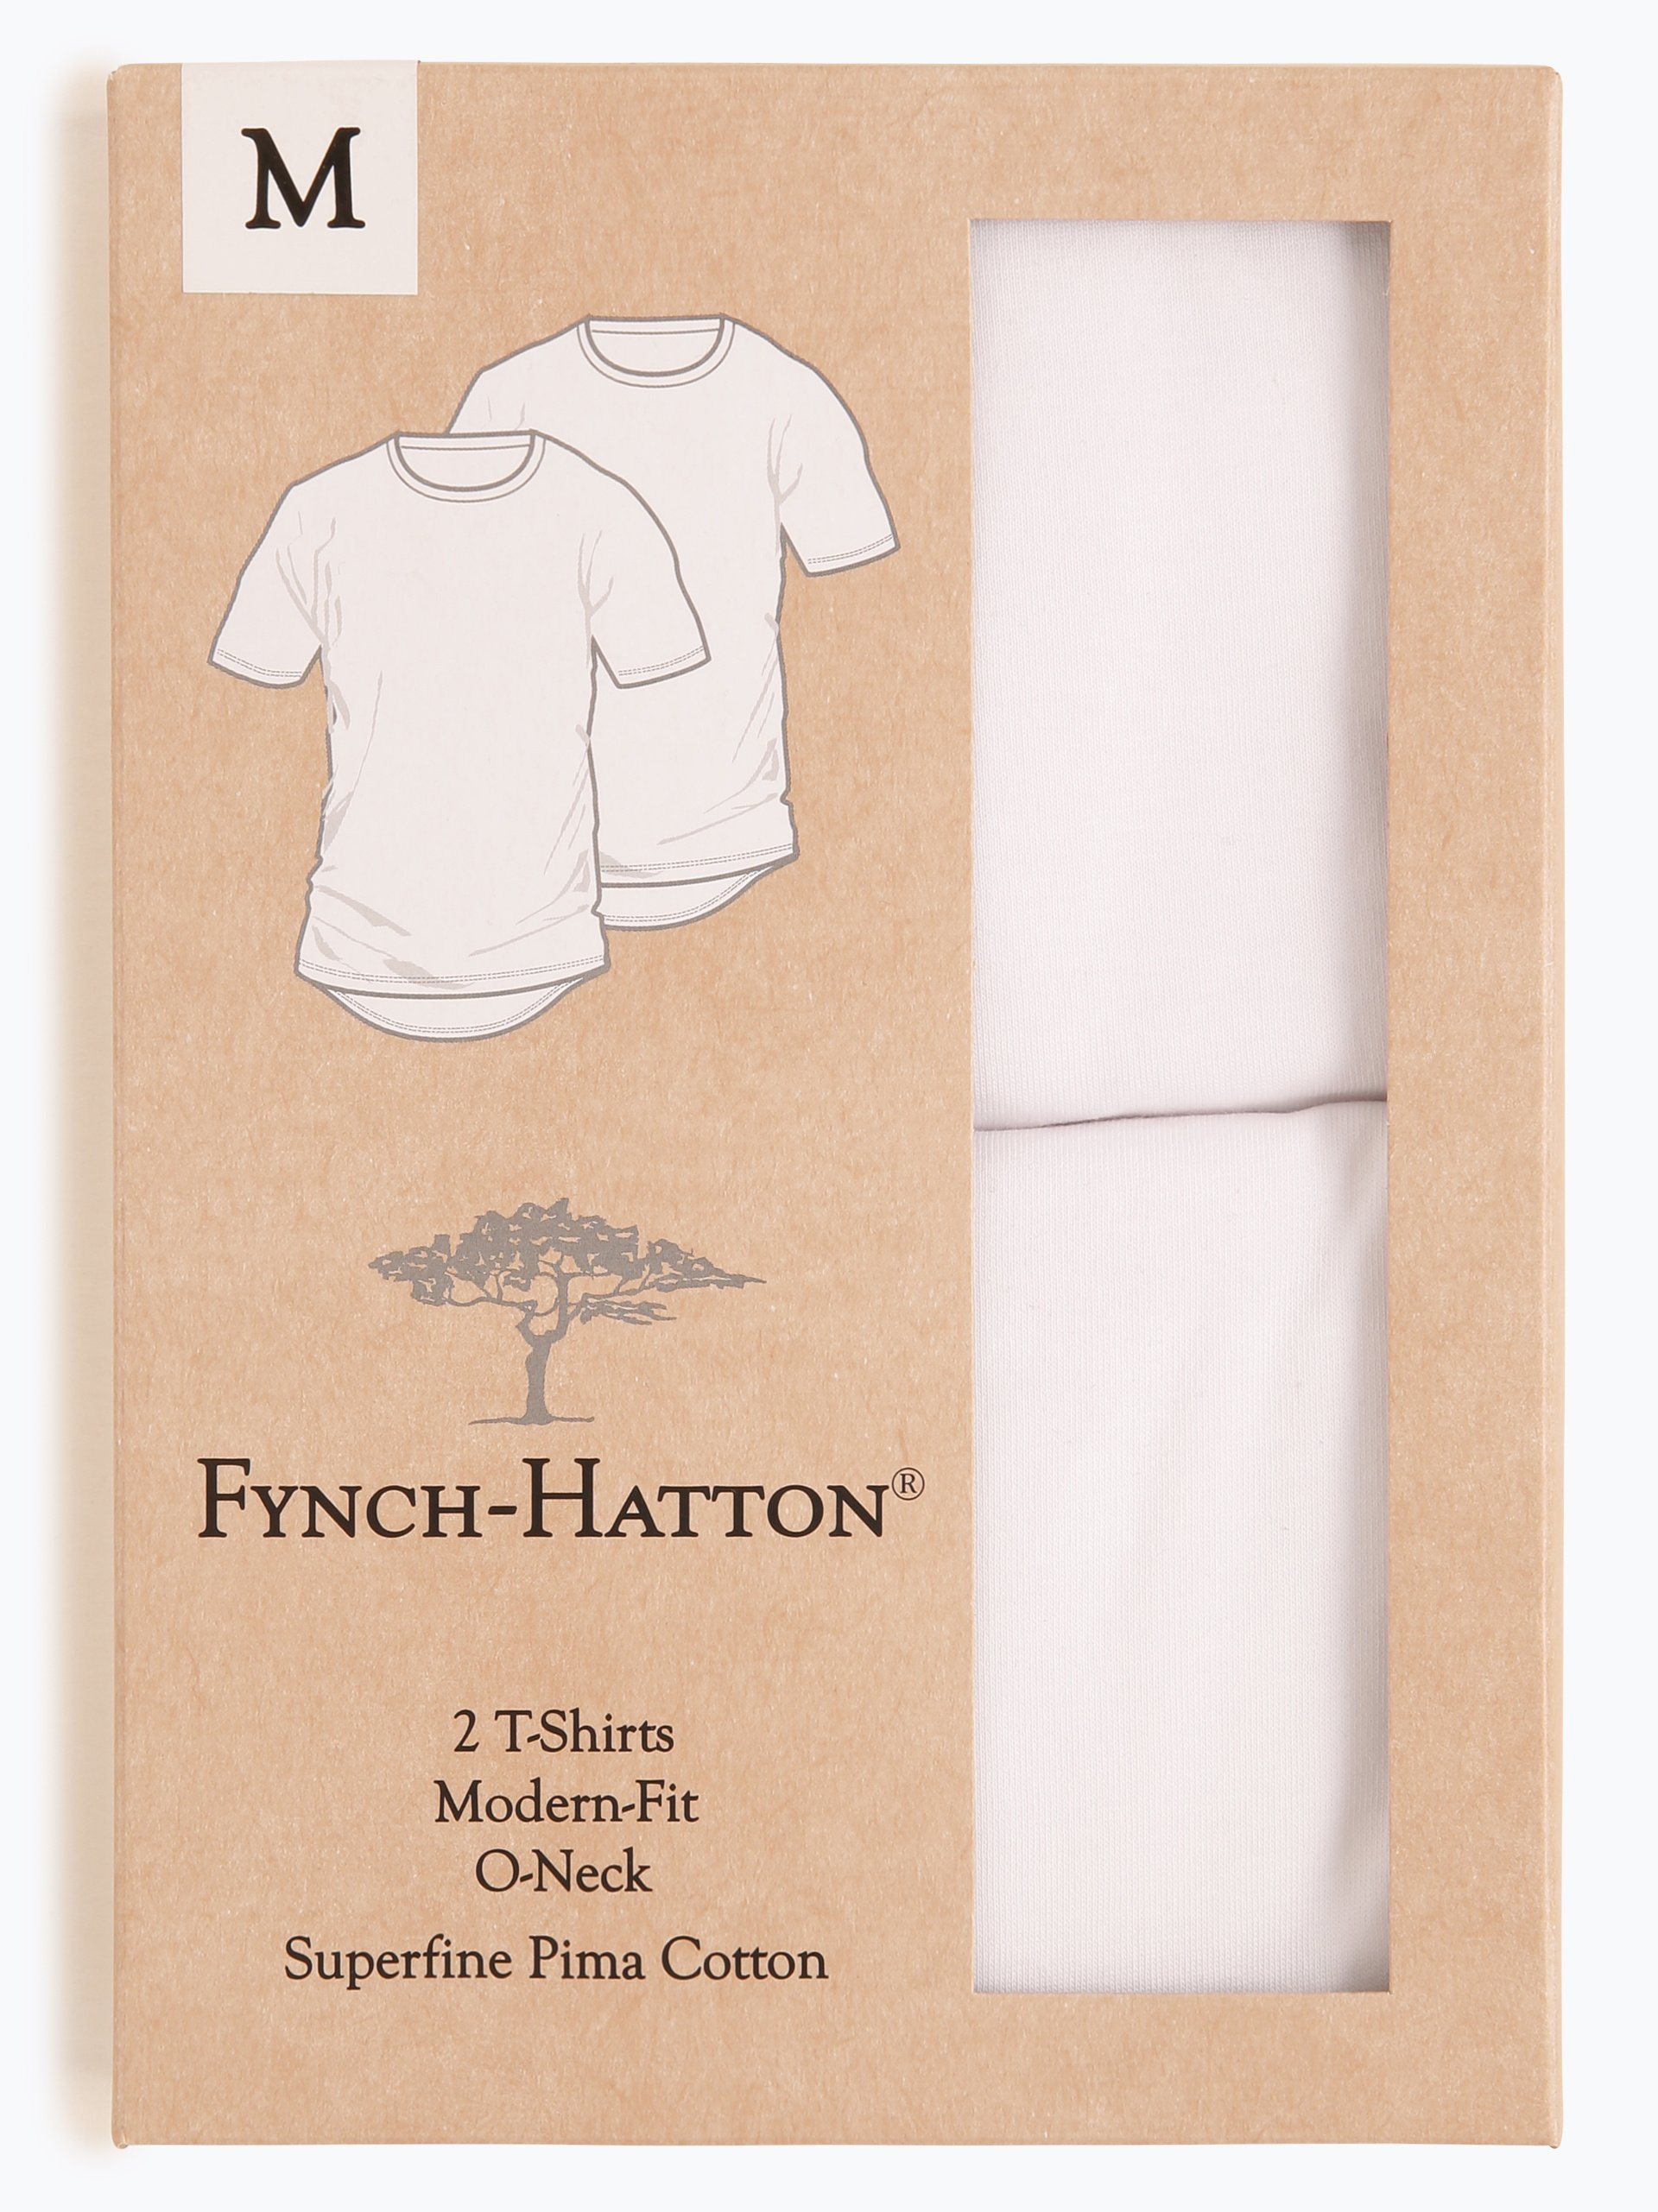 Fynch Hatton Herren T-Shirt im 2er-Pack